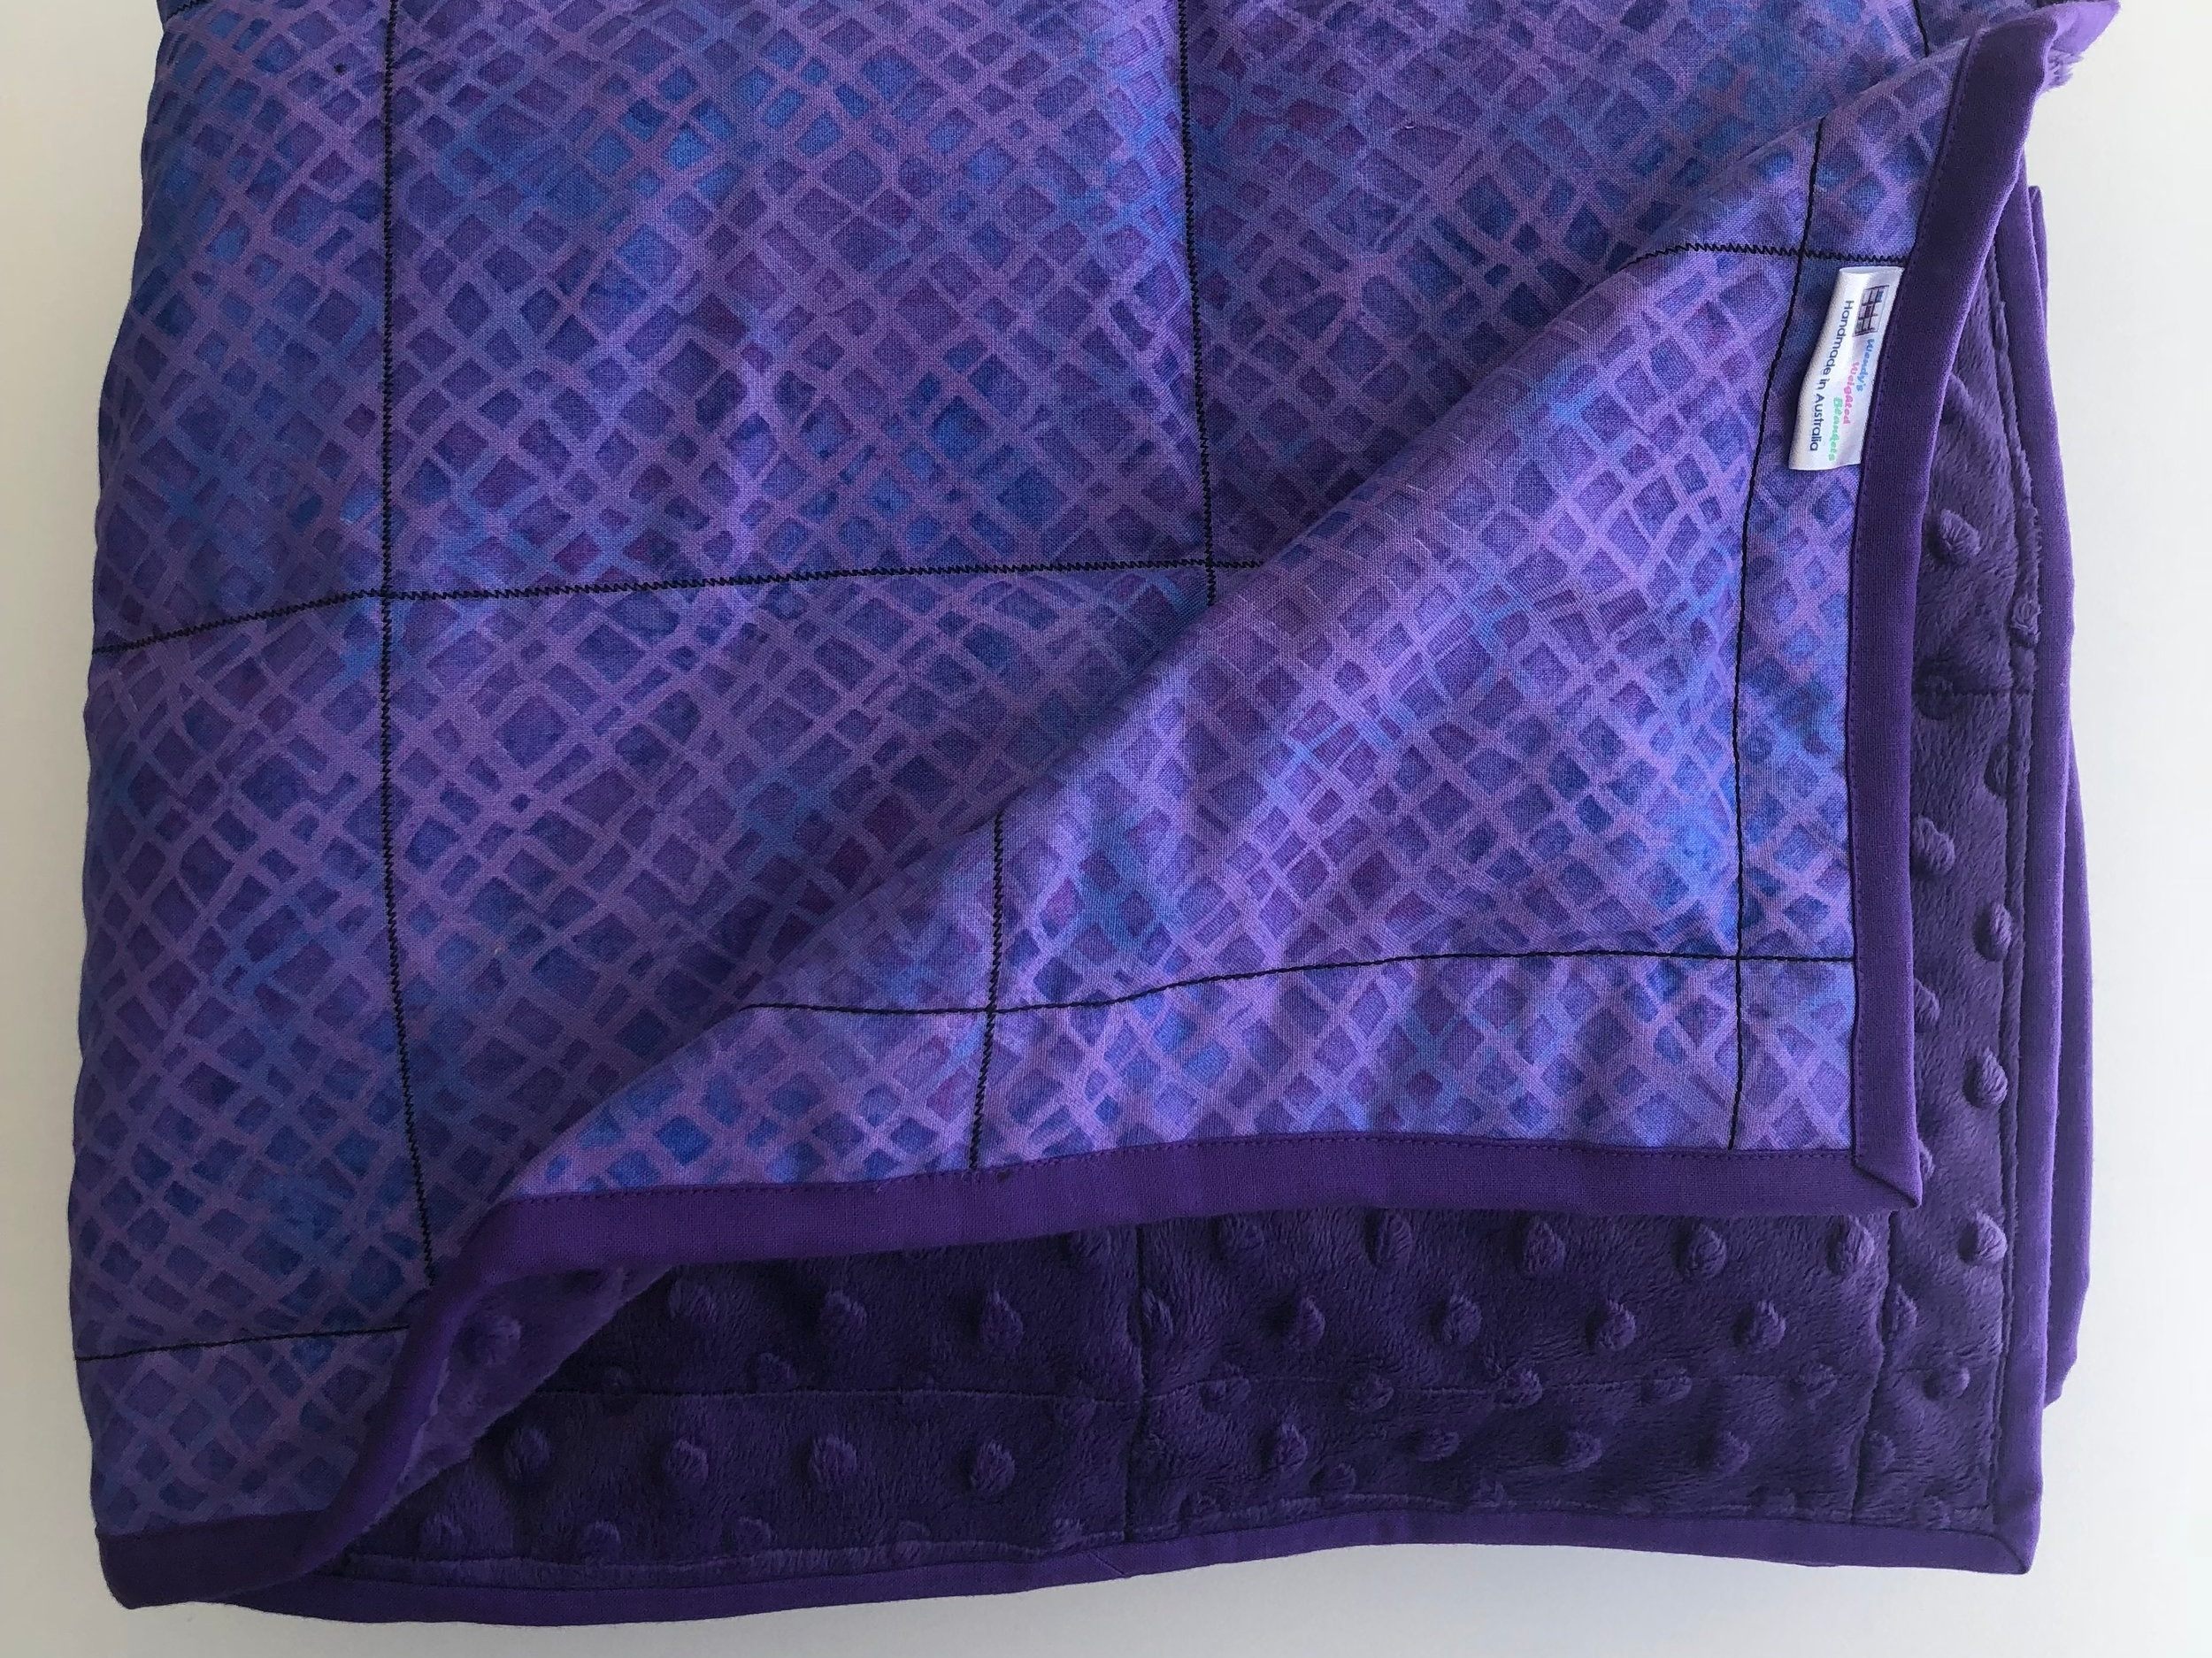 Weighted Blankets150 cm x 100 cm or XL 170 cm x 110 cm approx.Stock items or Custom made in your choice of fabrics. -